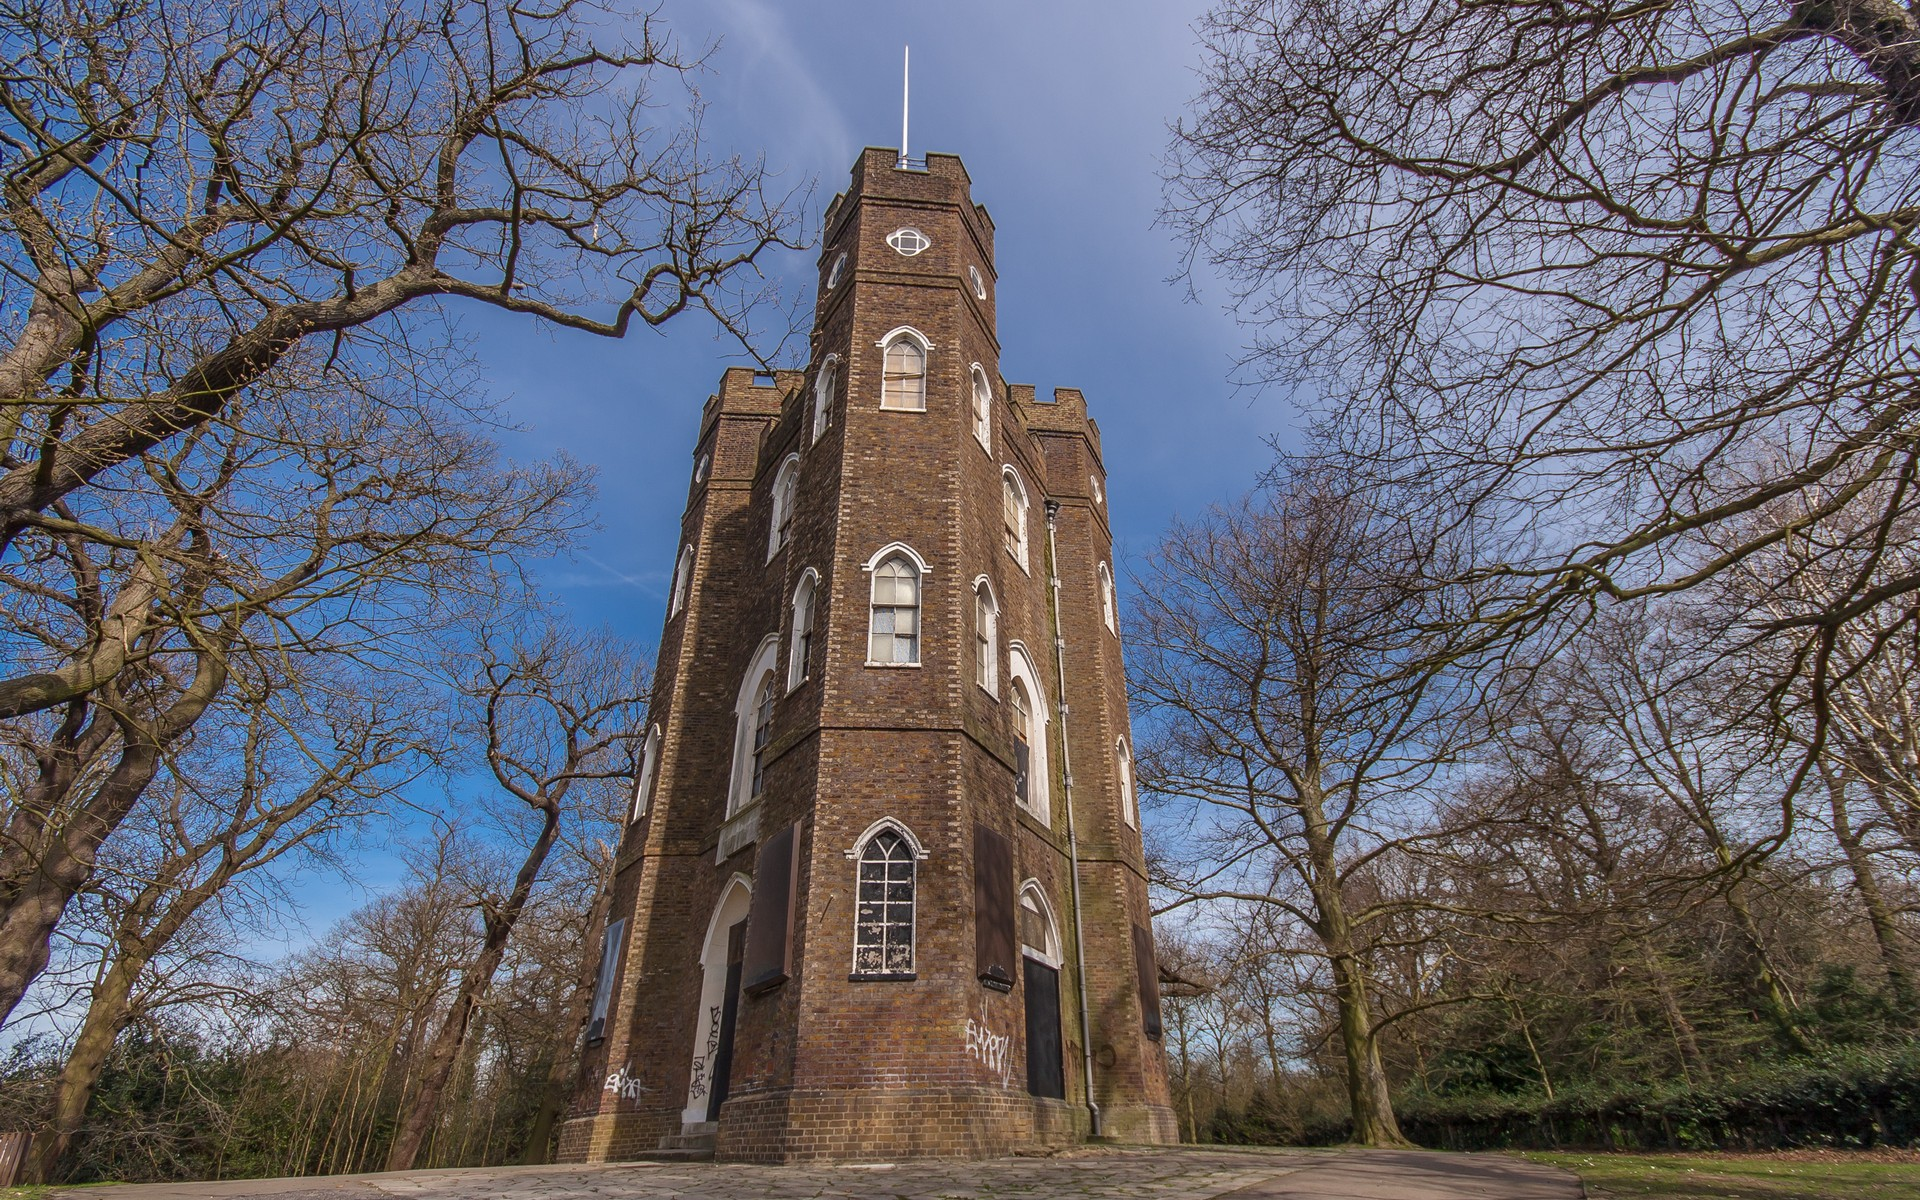 Severndroog Castle, Shooters Hill, London